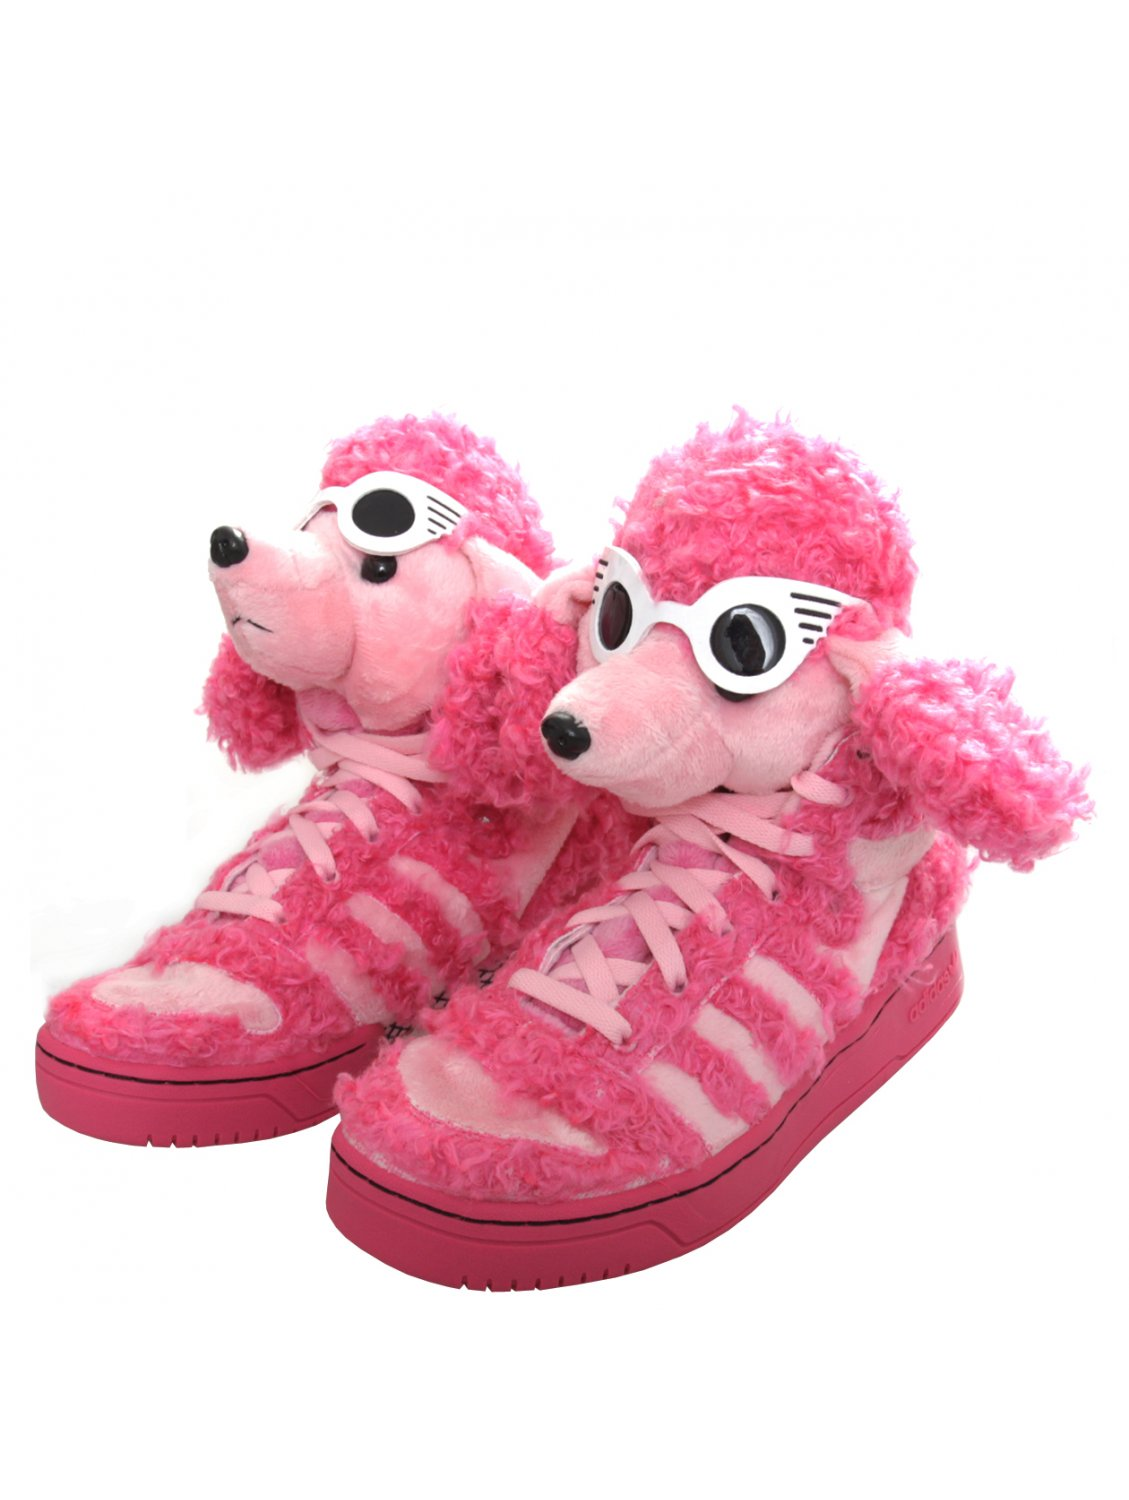 Jeremy scott for adidas Poodle High Top Sneaker Pink in ...